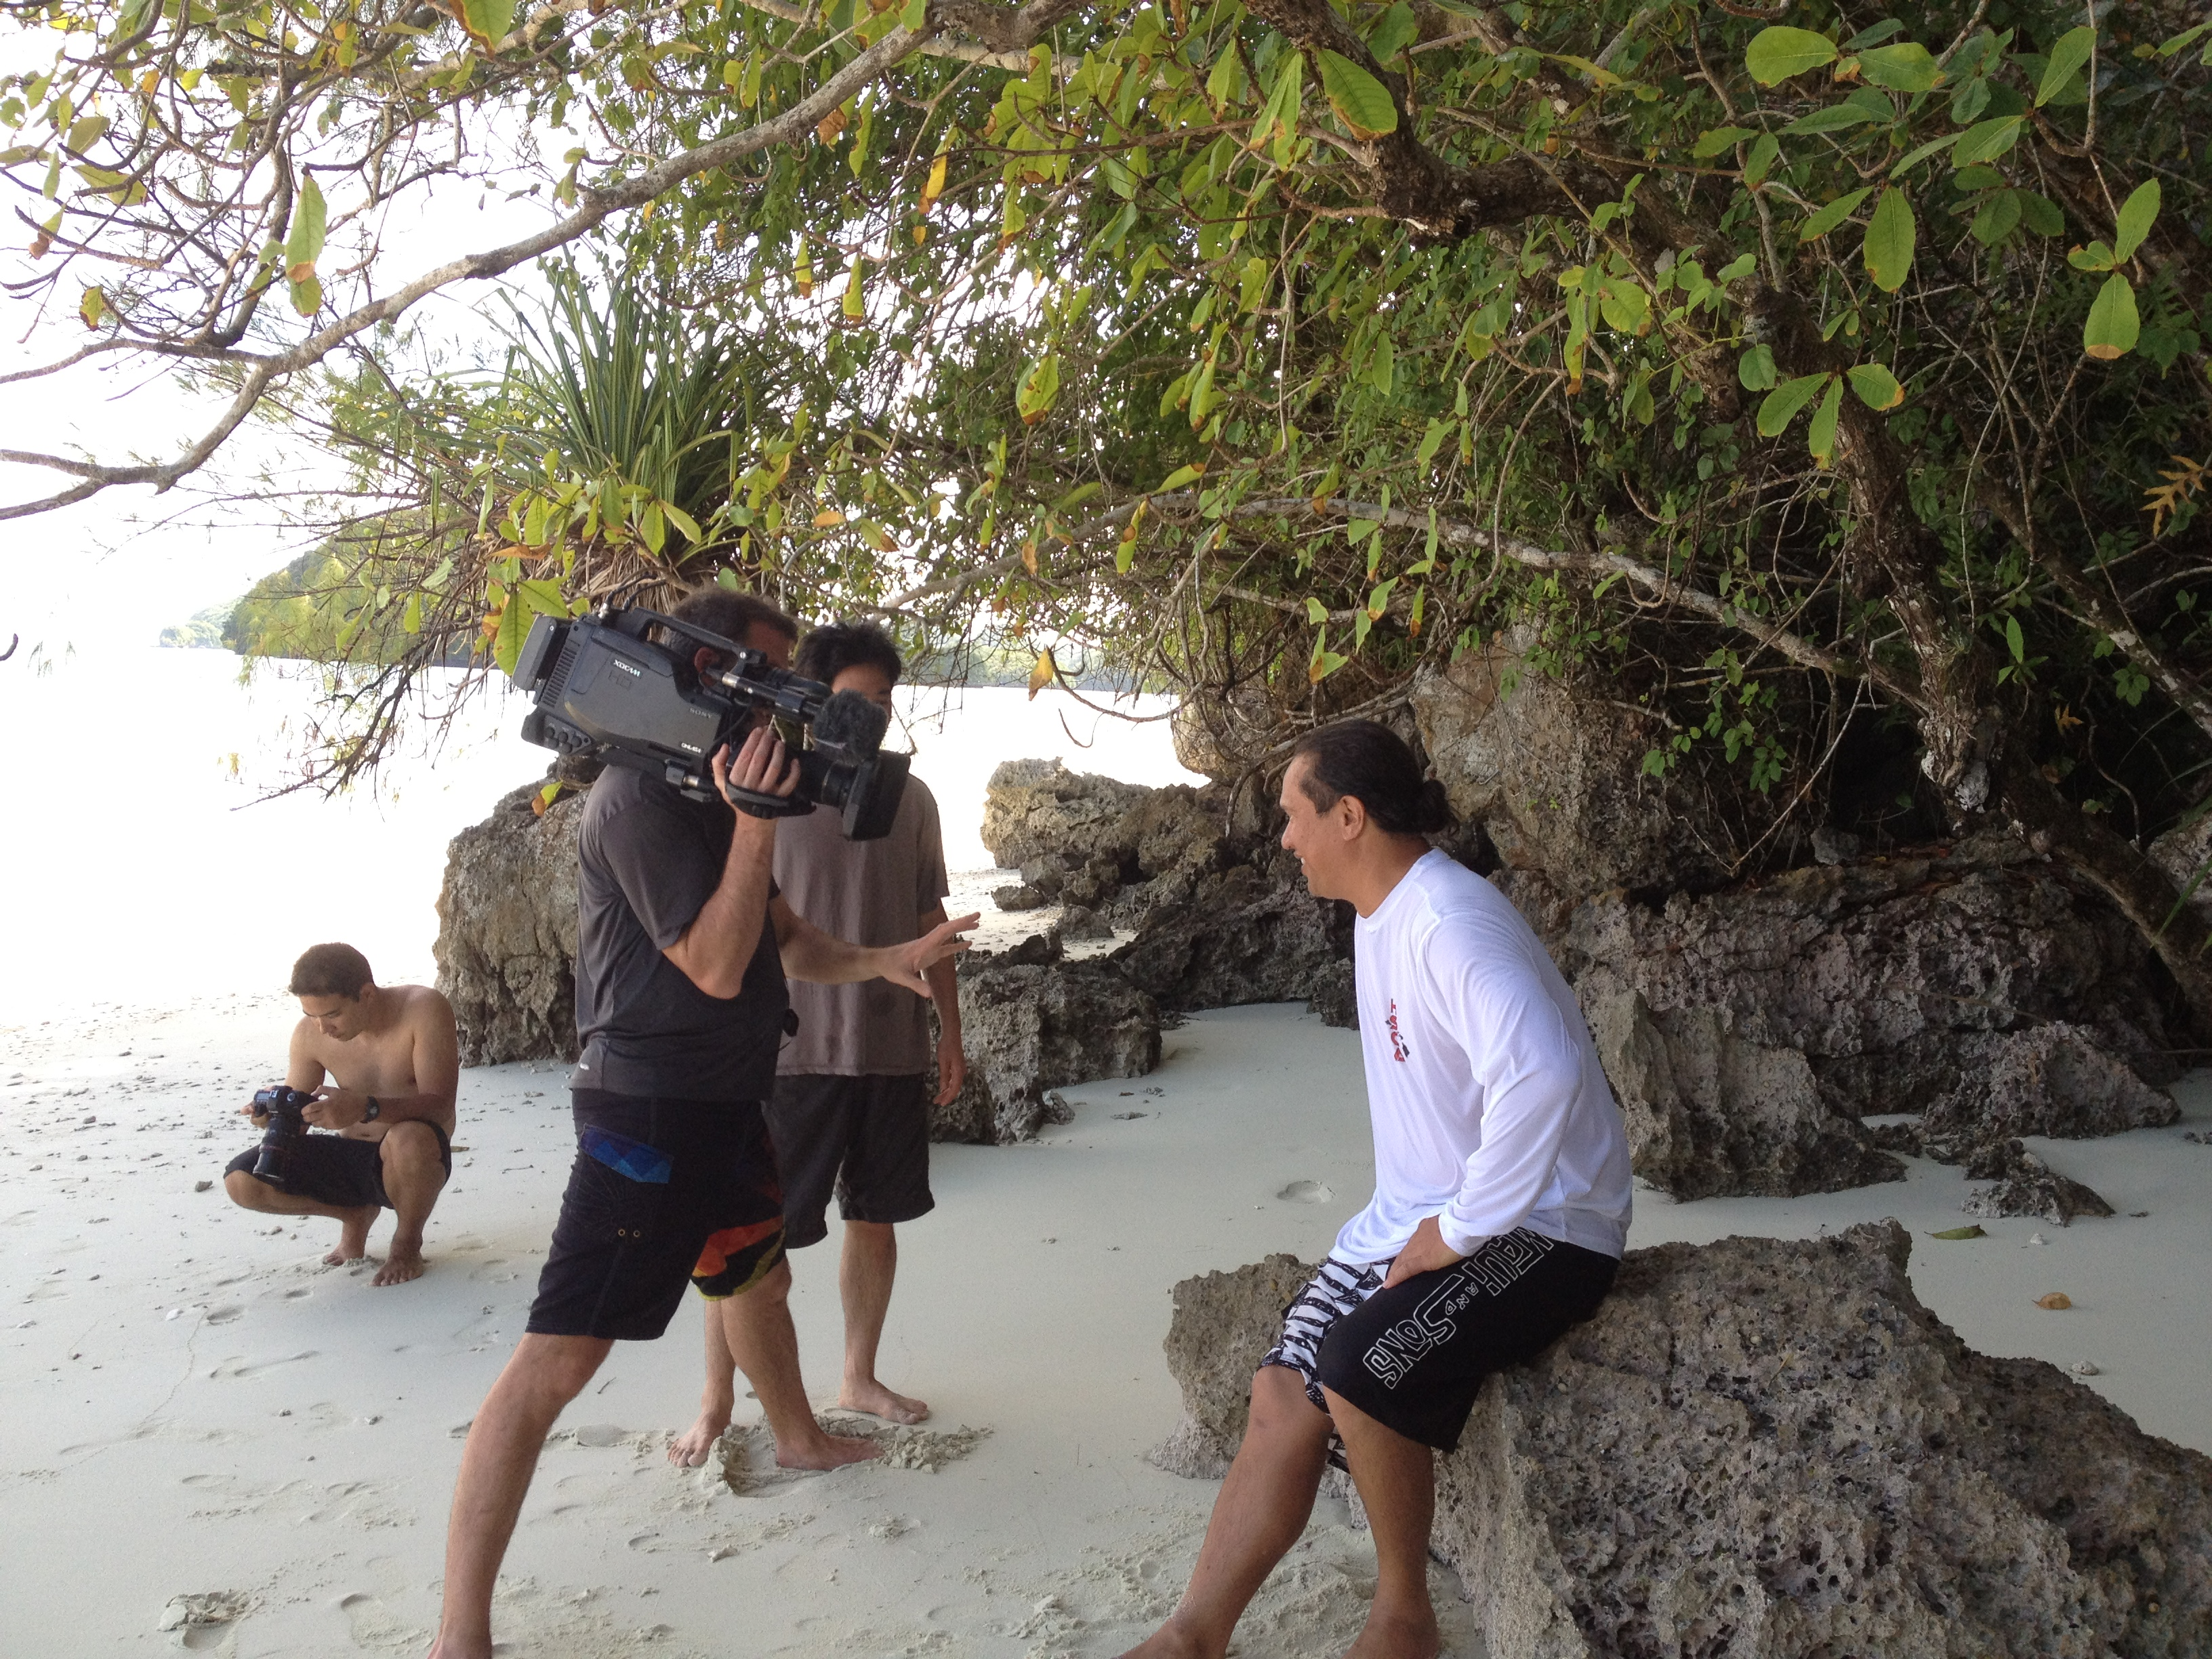 Interview on the beach in Palau, Micronesia. Photo © TNC